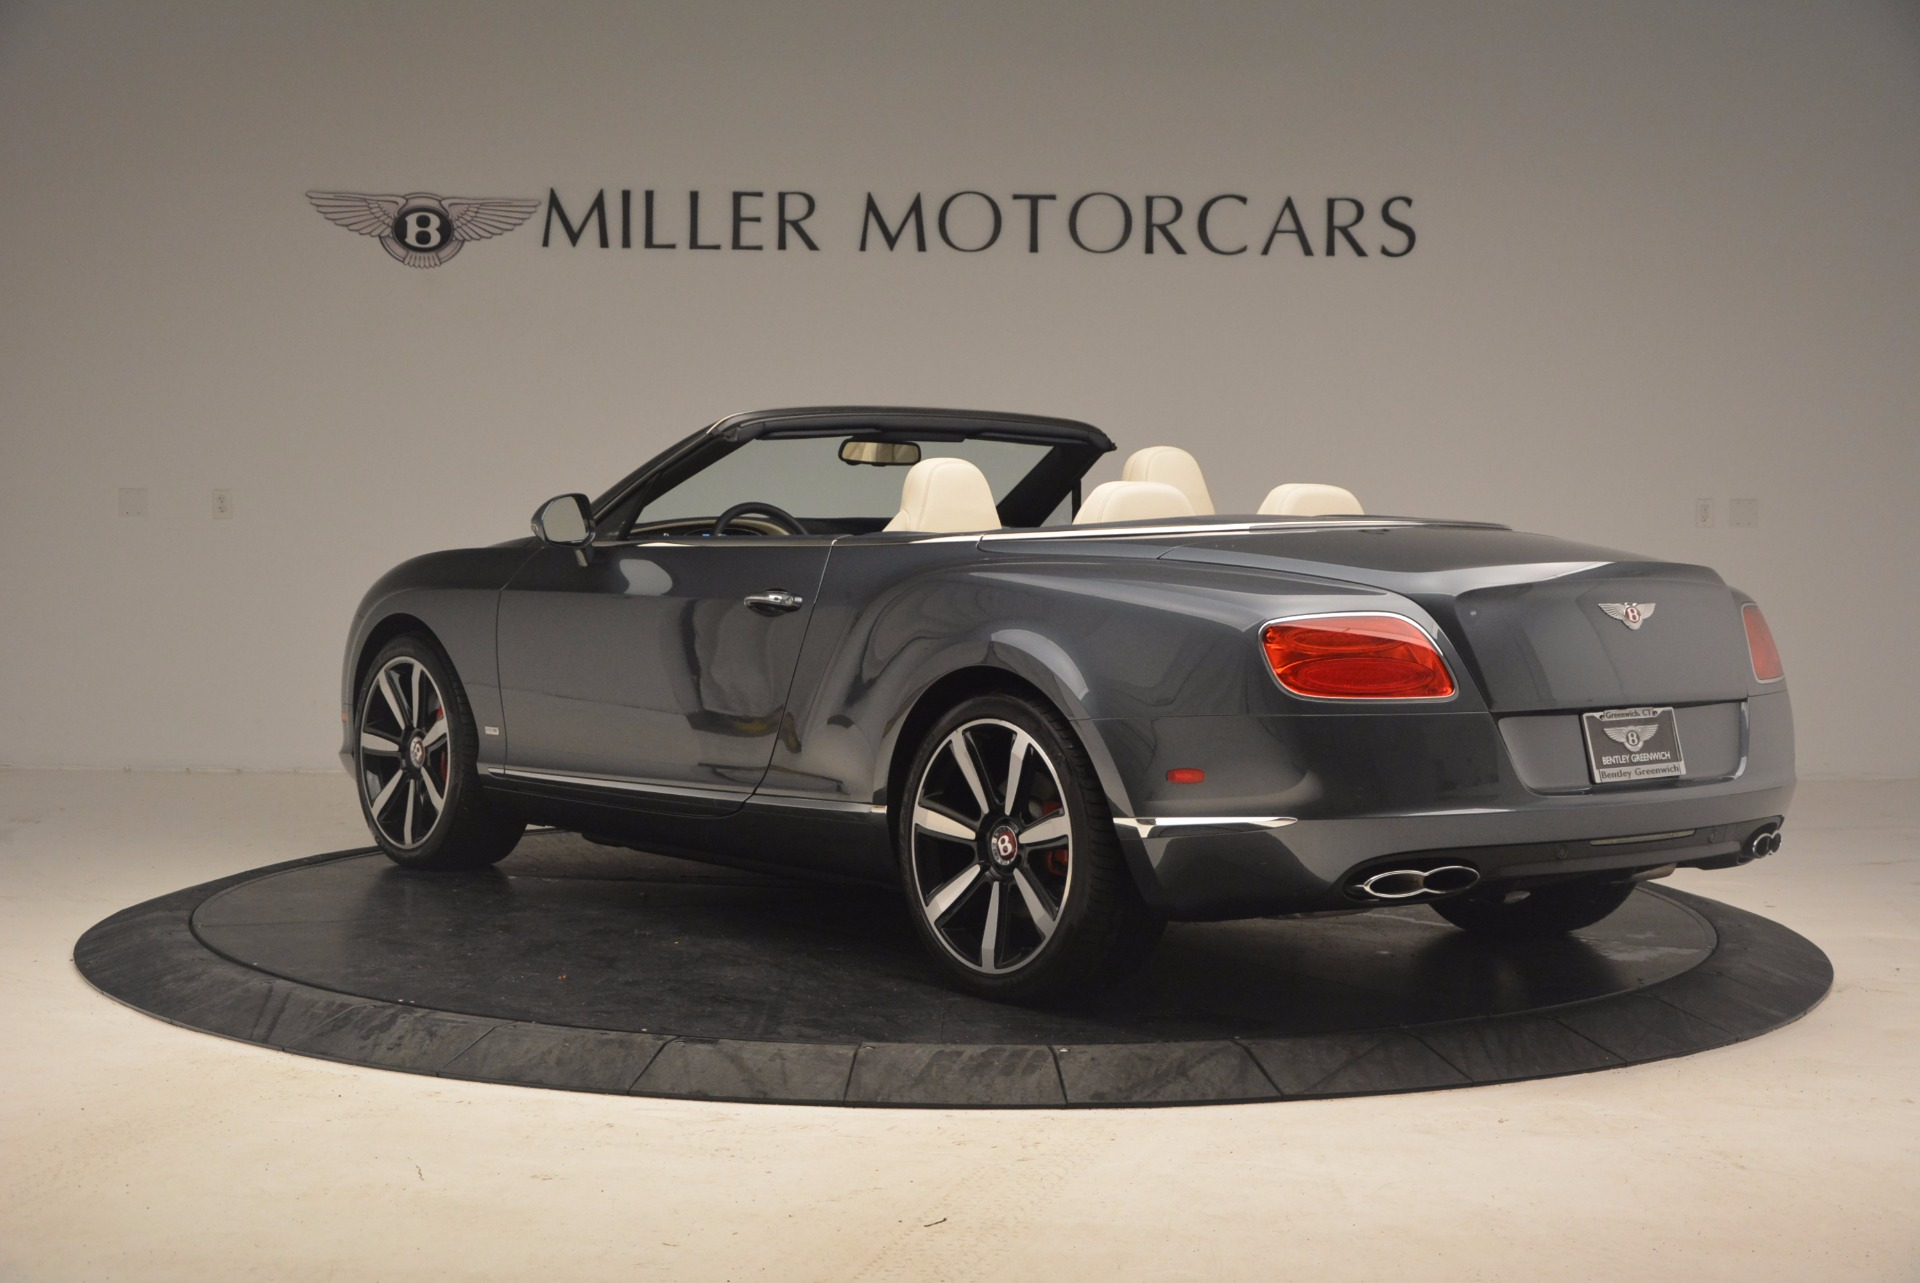 Used 2013 Bentley Continental GT V8 Le Mans Edition, 1 of 48 For Sale In Westport, CT 1288_p4